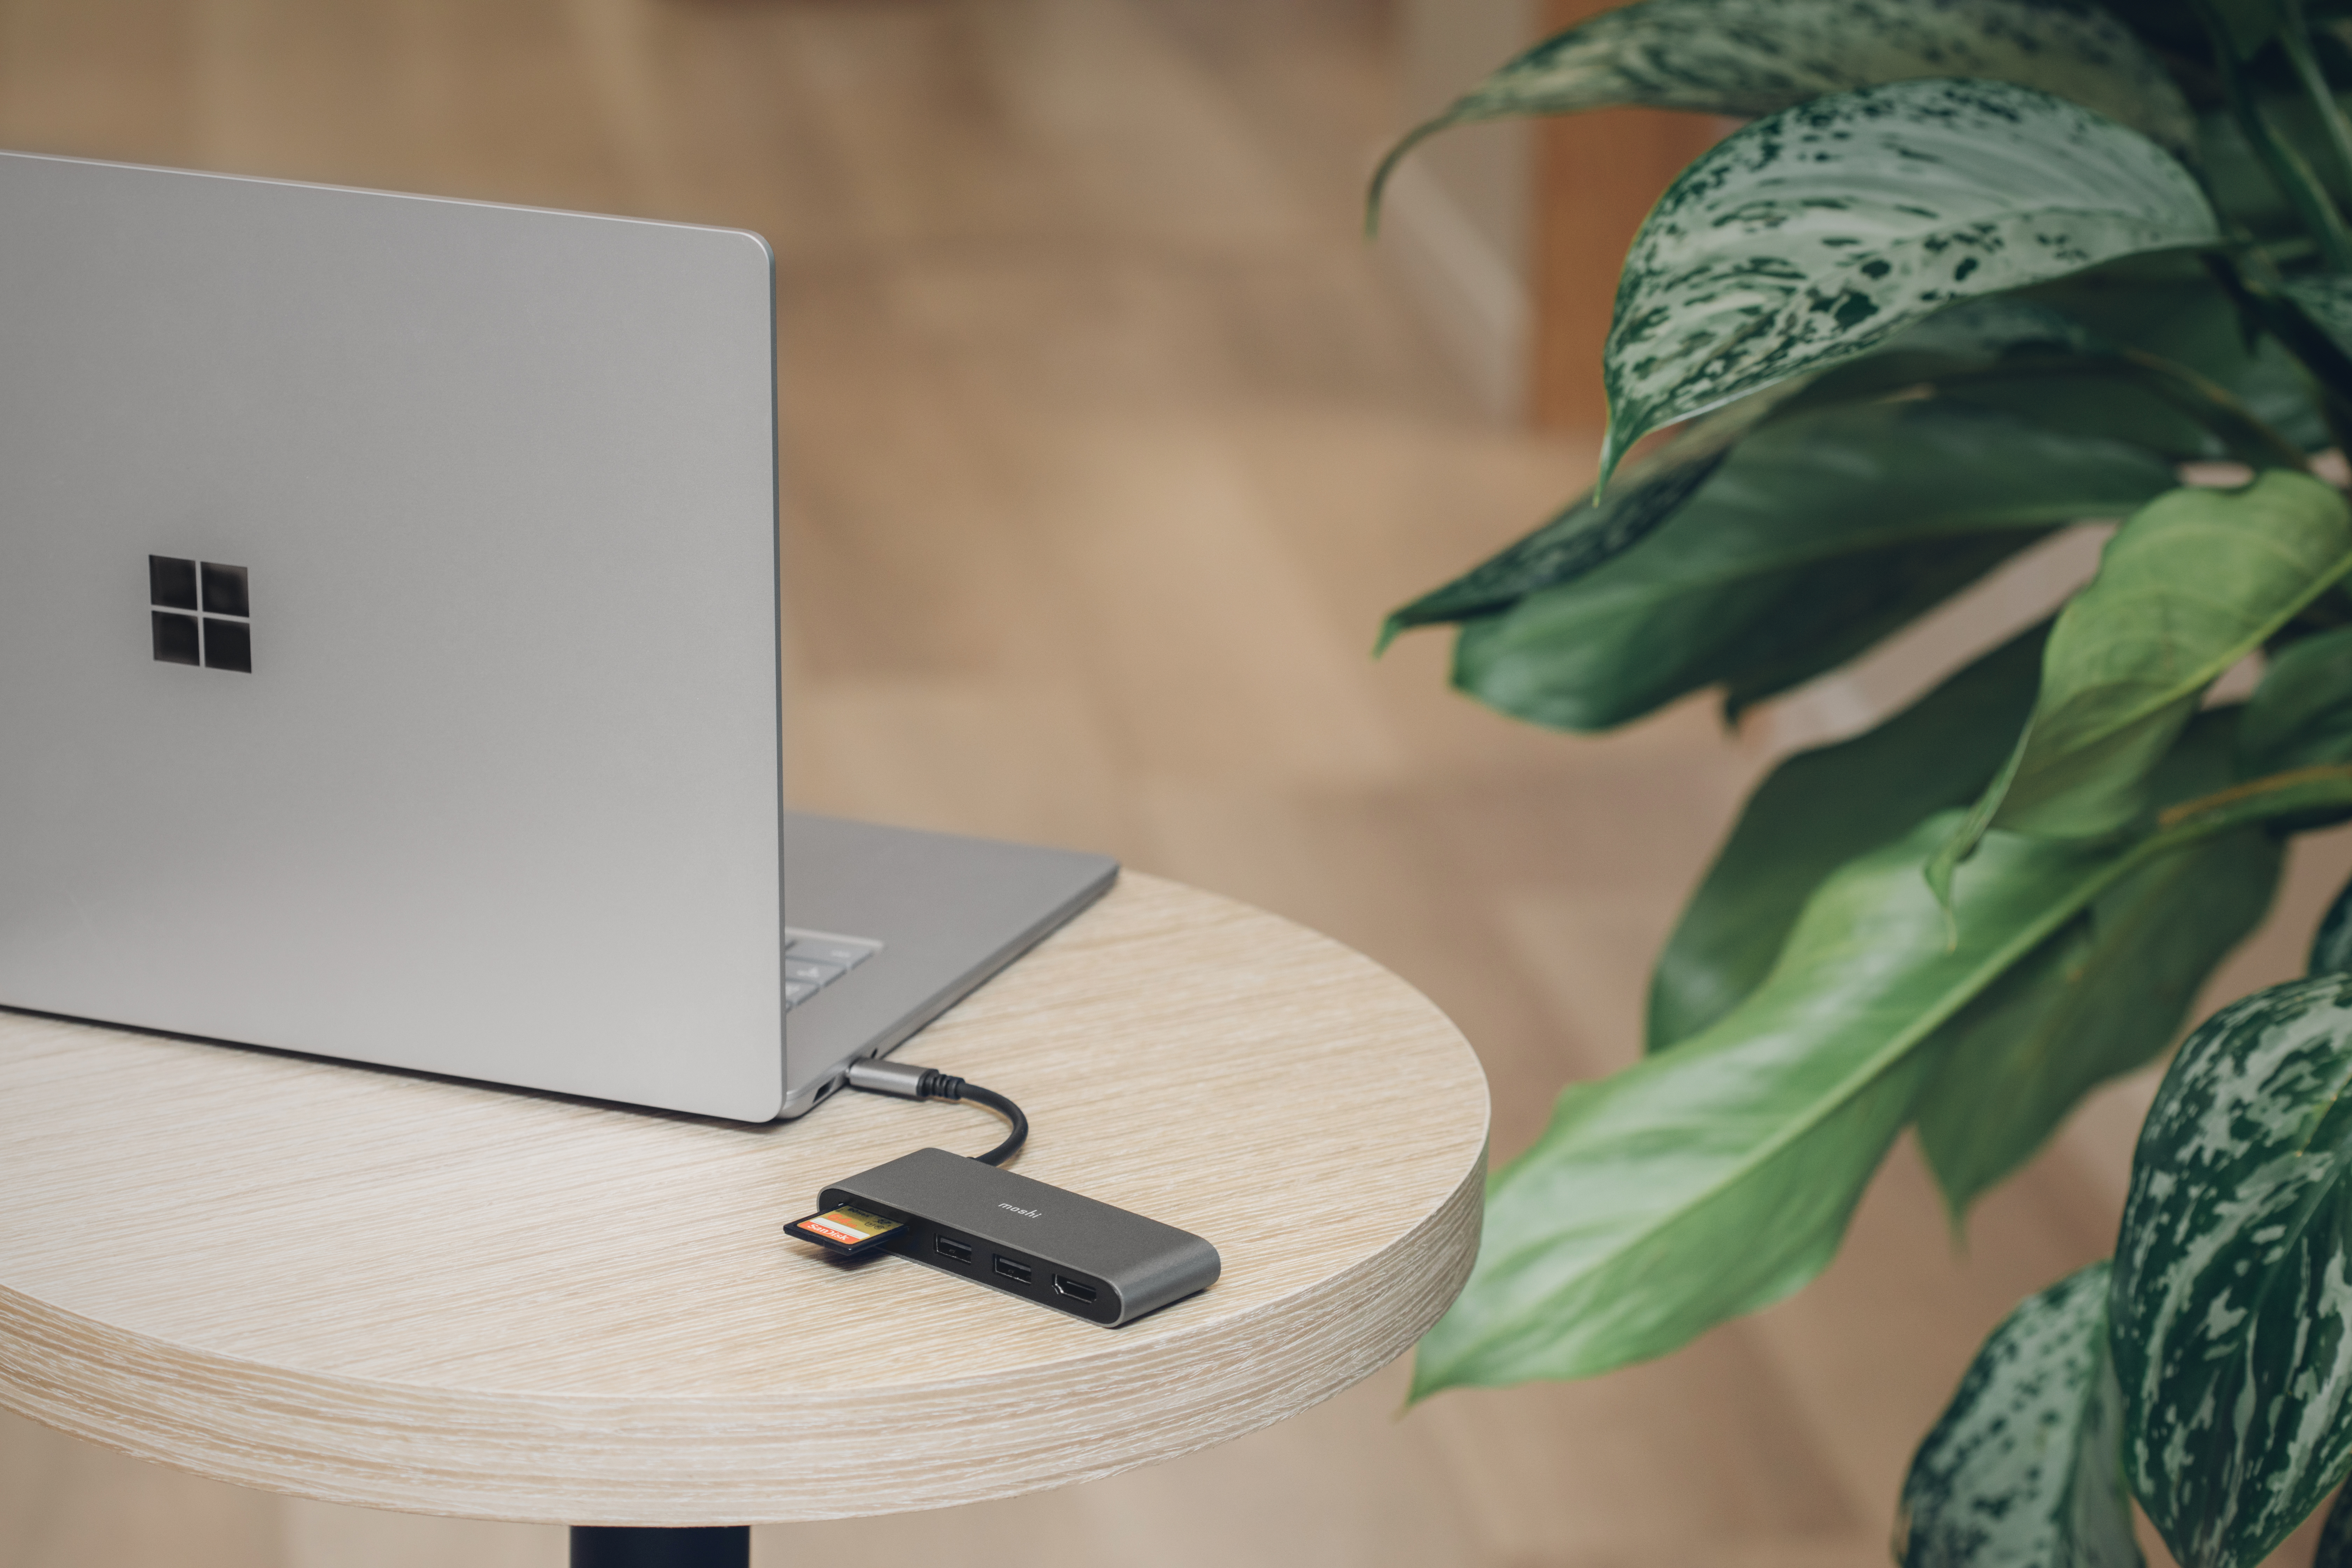 A Moshi USB-C Multimedia Adapter connected to a Surface Laptop